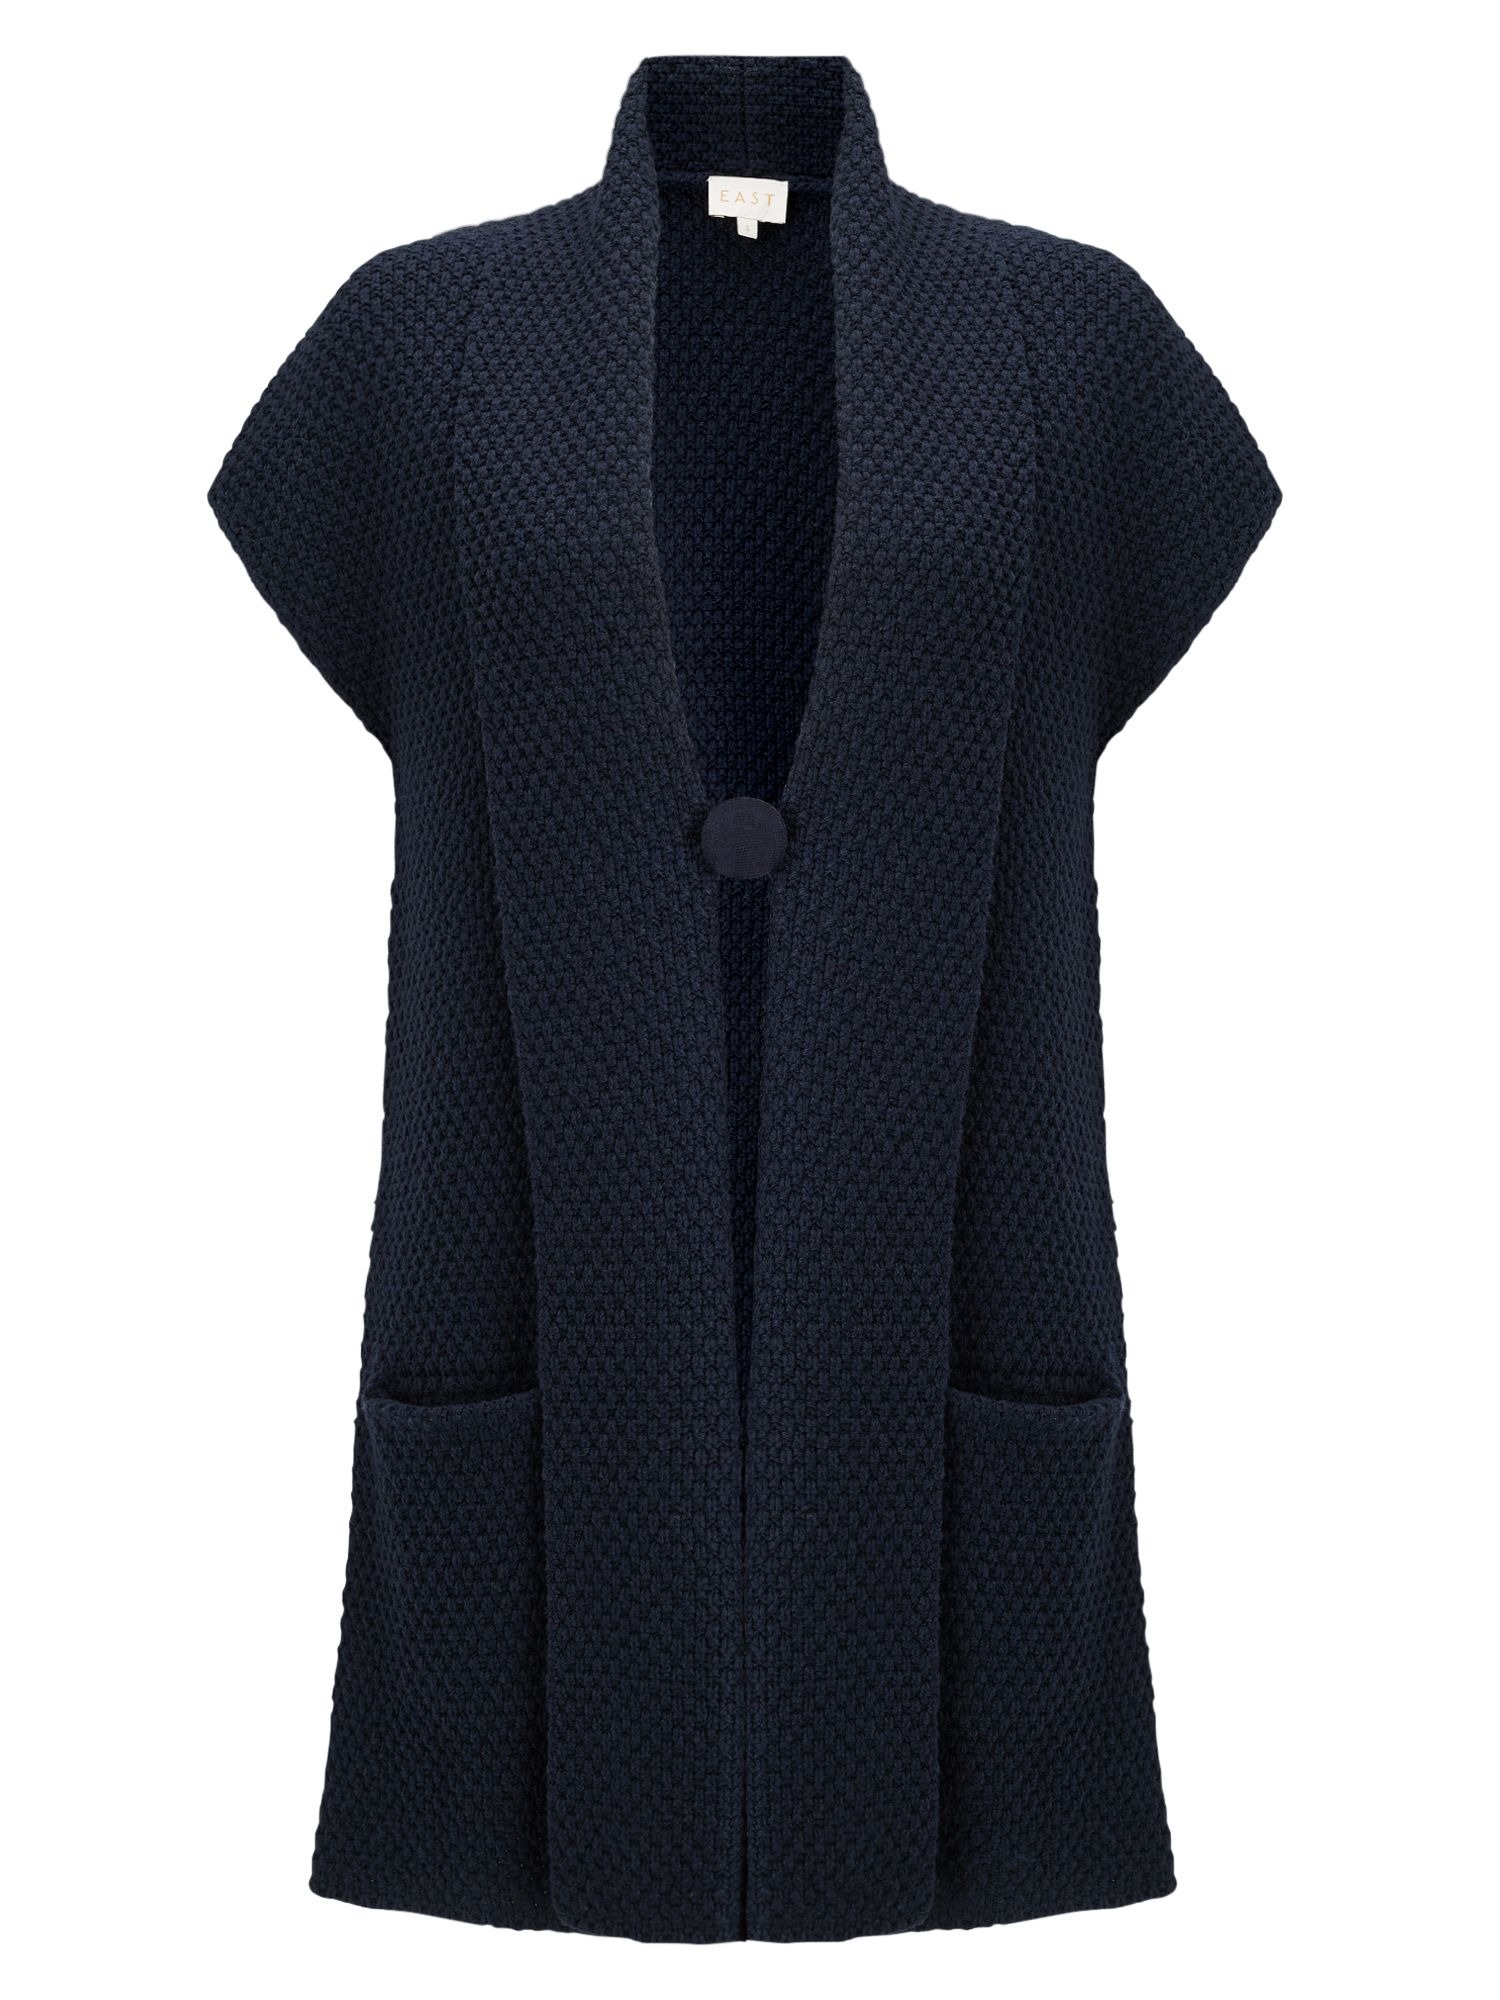 East Textured Knit Waistcoat, Blue